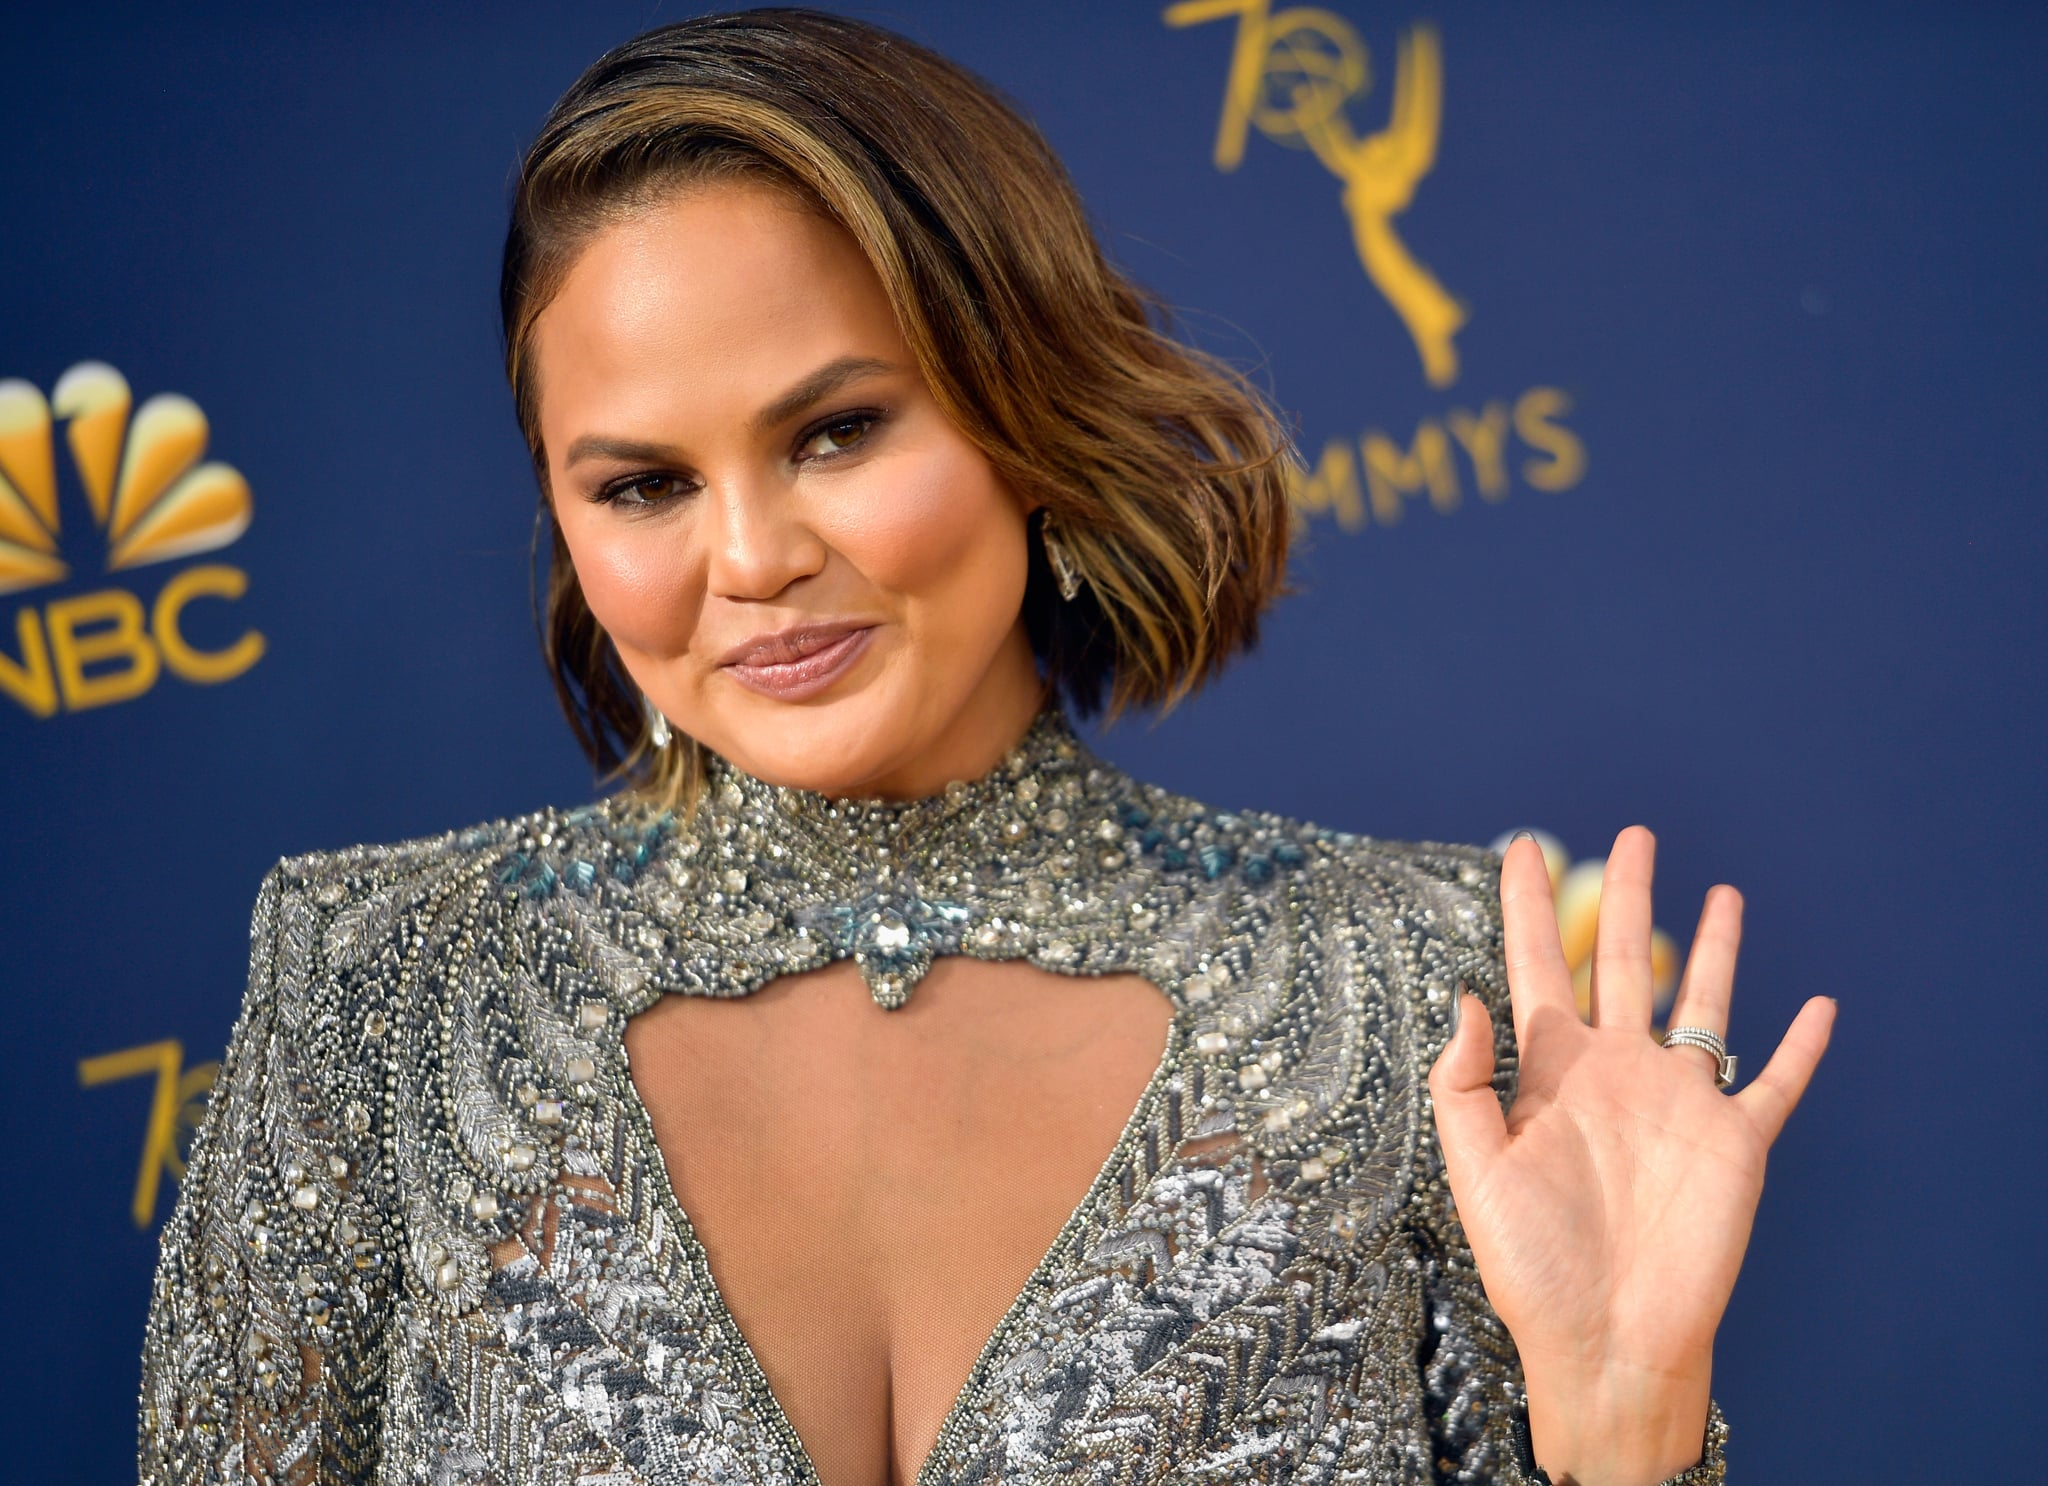 LOS ANGELES, CA - SEPTEMBER 17:  Chrissy Teigen attends the 70th Emmy Awards at Microsoft Theatre on September 17, 2018 in Los Angeles, California.  (Photo by Matt Winkelmeyer/Getty Images)